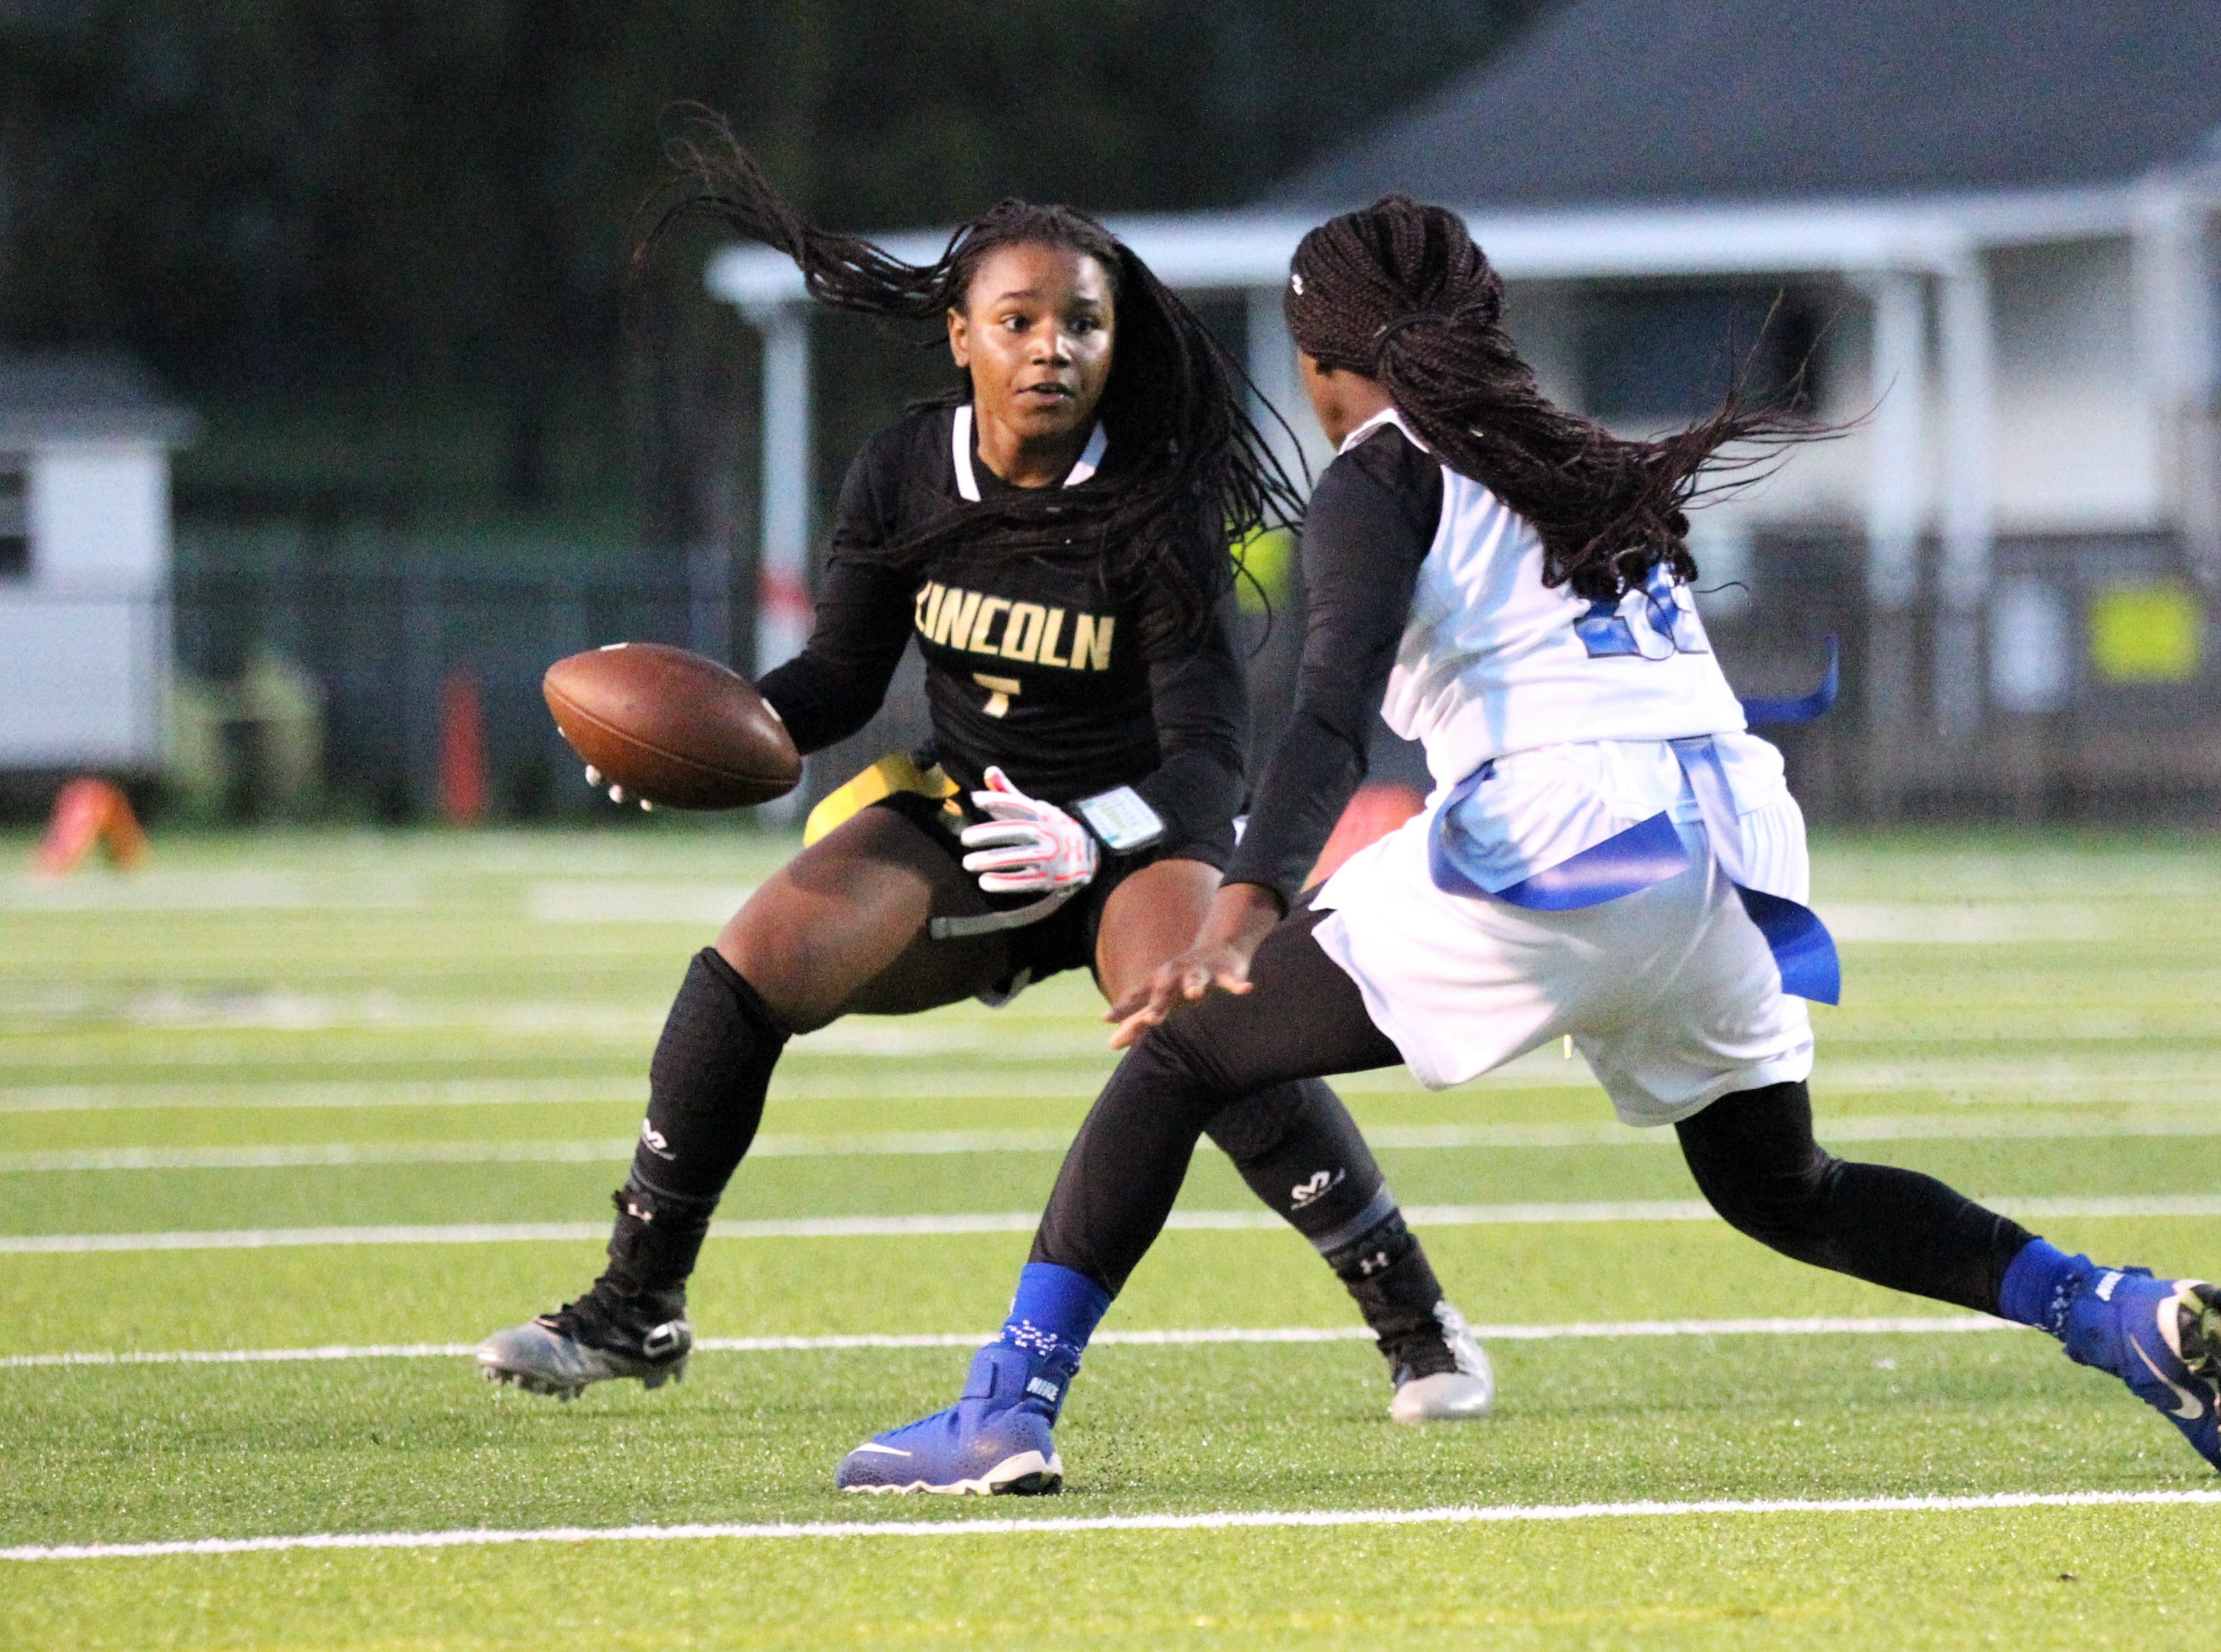 Lincoln sophomore Erin Turral tries to evade Godby's Essence Nobles as Godby's flag football team beat Lincoln 25-6 at Gene Cox Stadium on March 14, 2019.